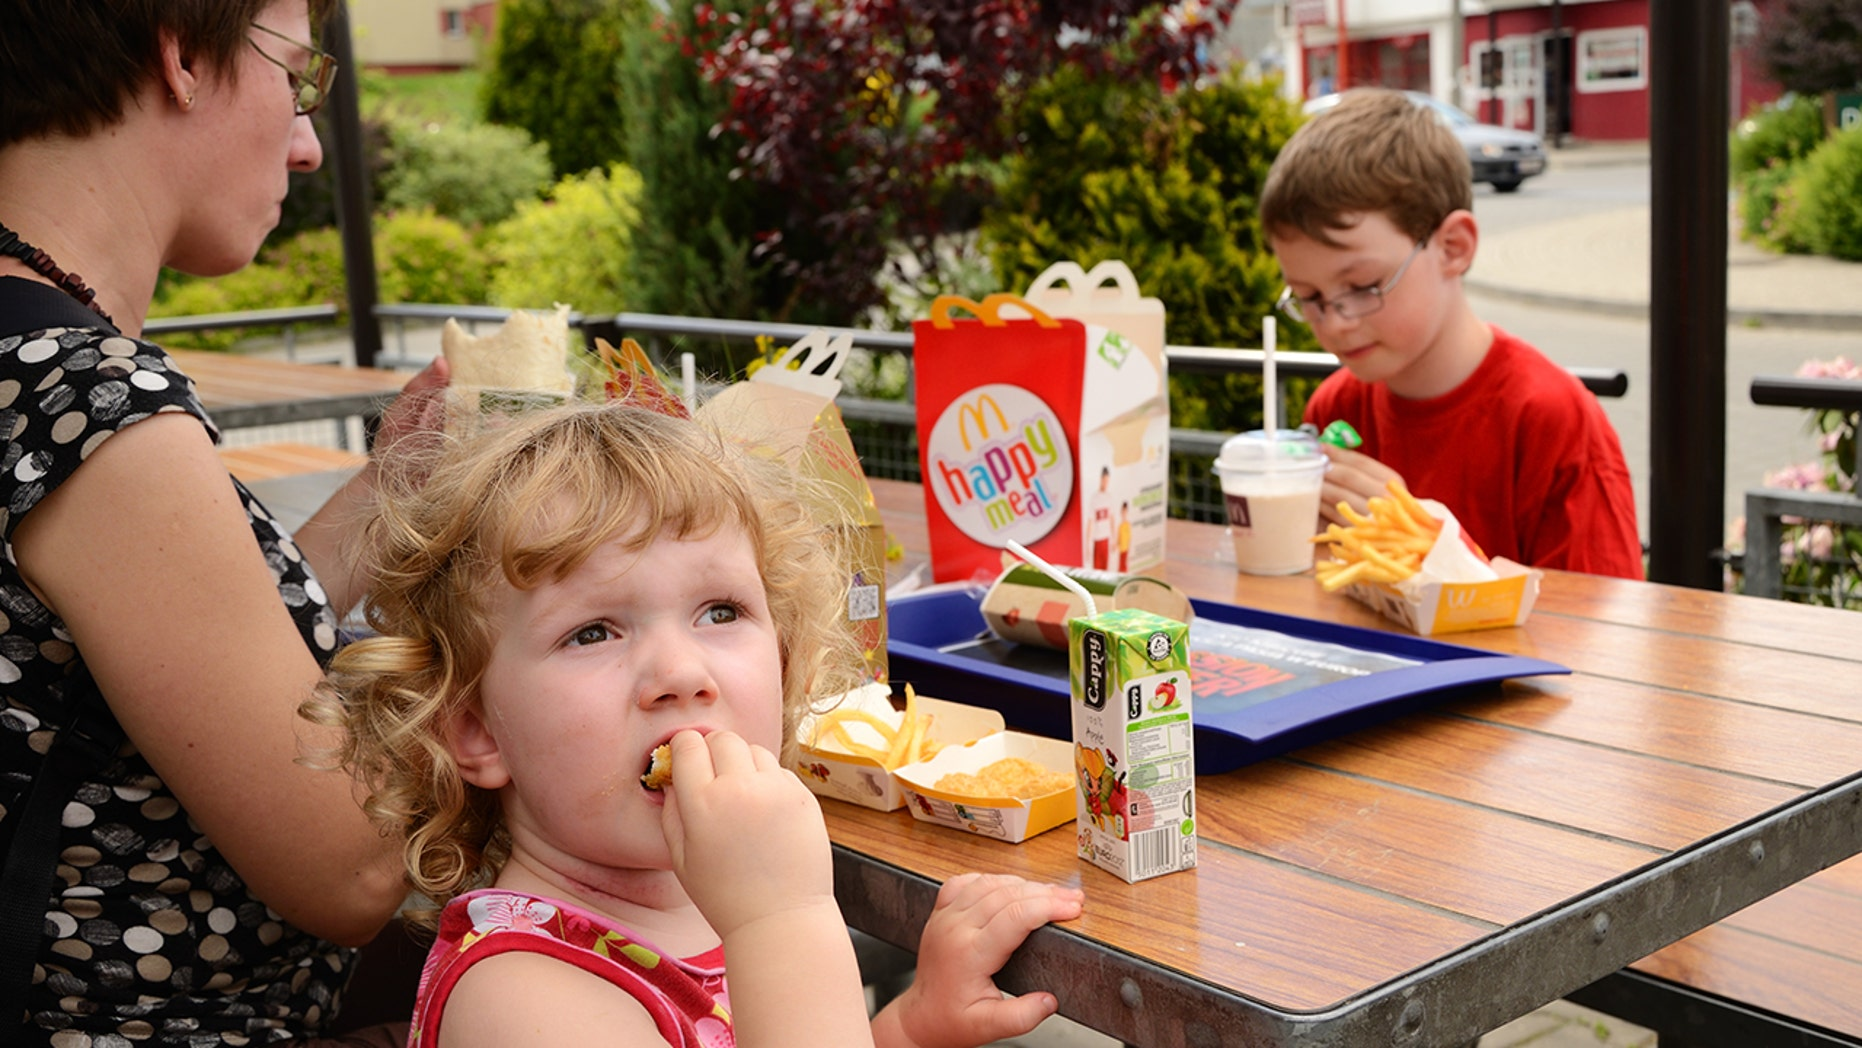 McDonald's in Canada is being sued for marketing Happy Meals to children under 13.